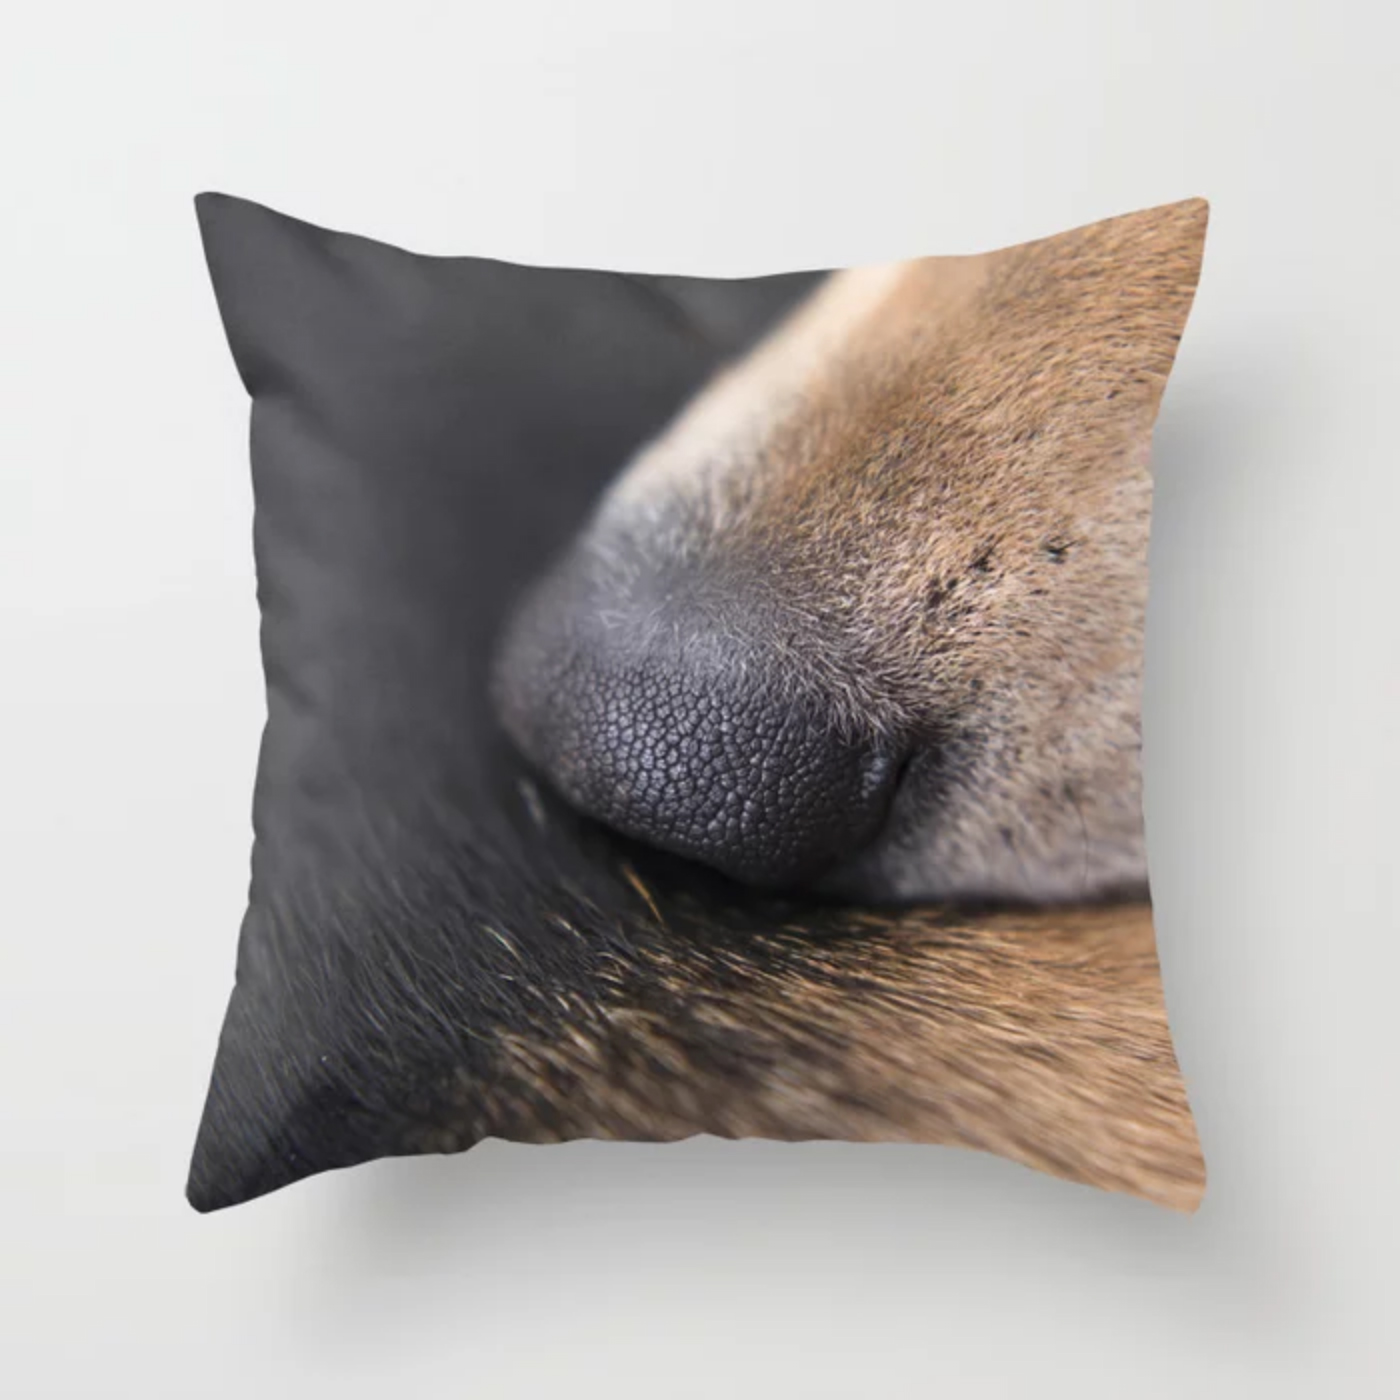 DOGvision, Fenne Kustermans, gifts for dog lovers, art prints, and wall art for dog lovers, www.DOGvision.eu - society6.com/dogvision